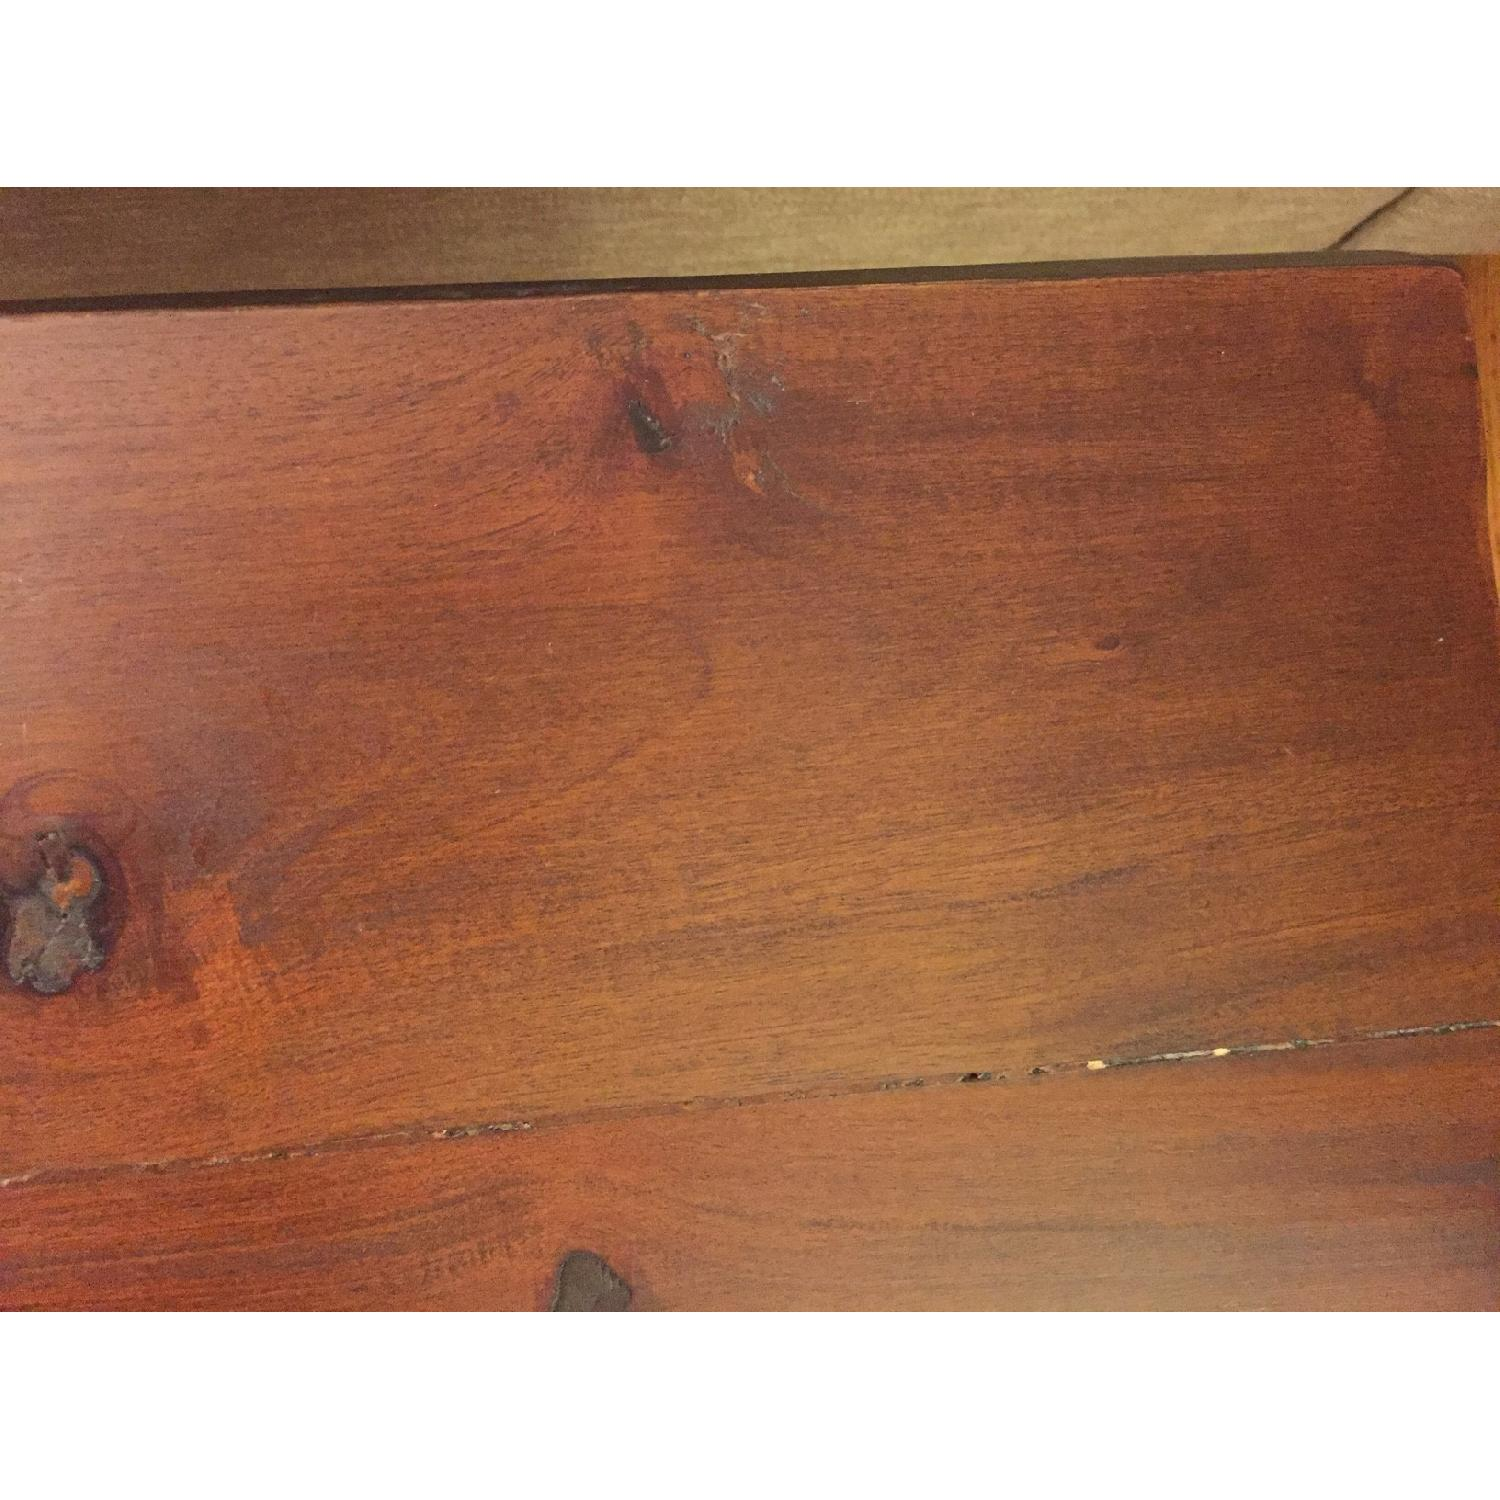 Natural Wood Table/Bench w/ Hairpin Legs - image-7